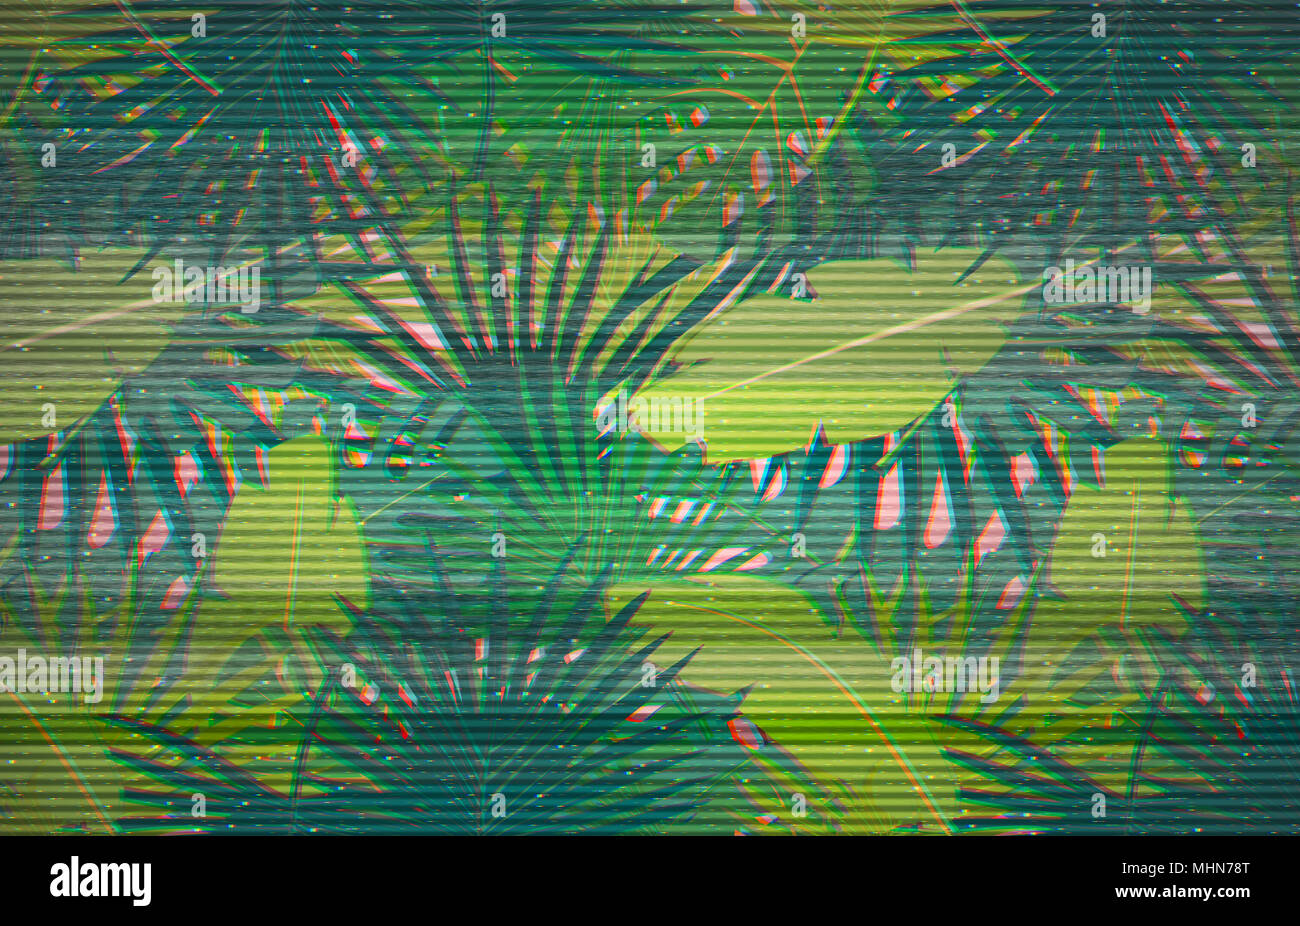 Abstract Digital Pattern With Colorful Palm Leaves Greenery